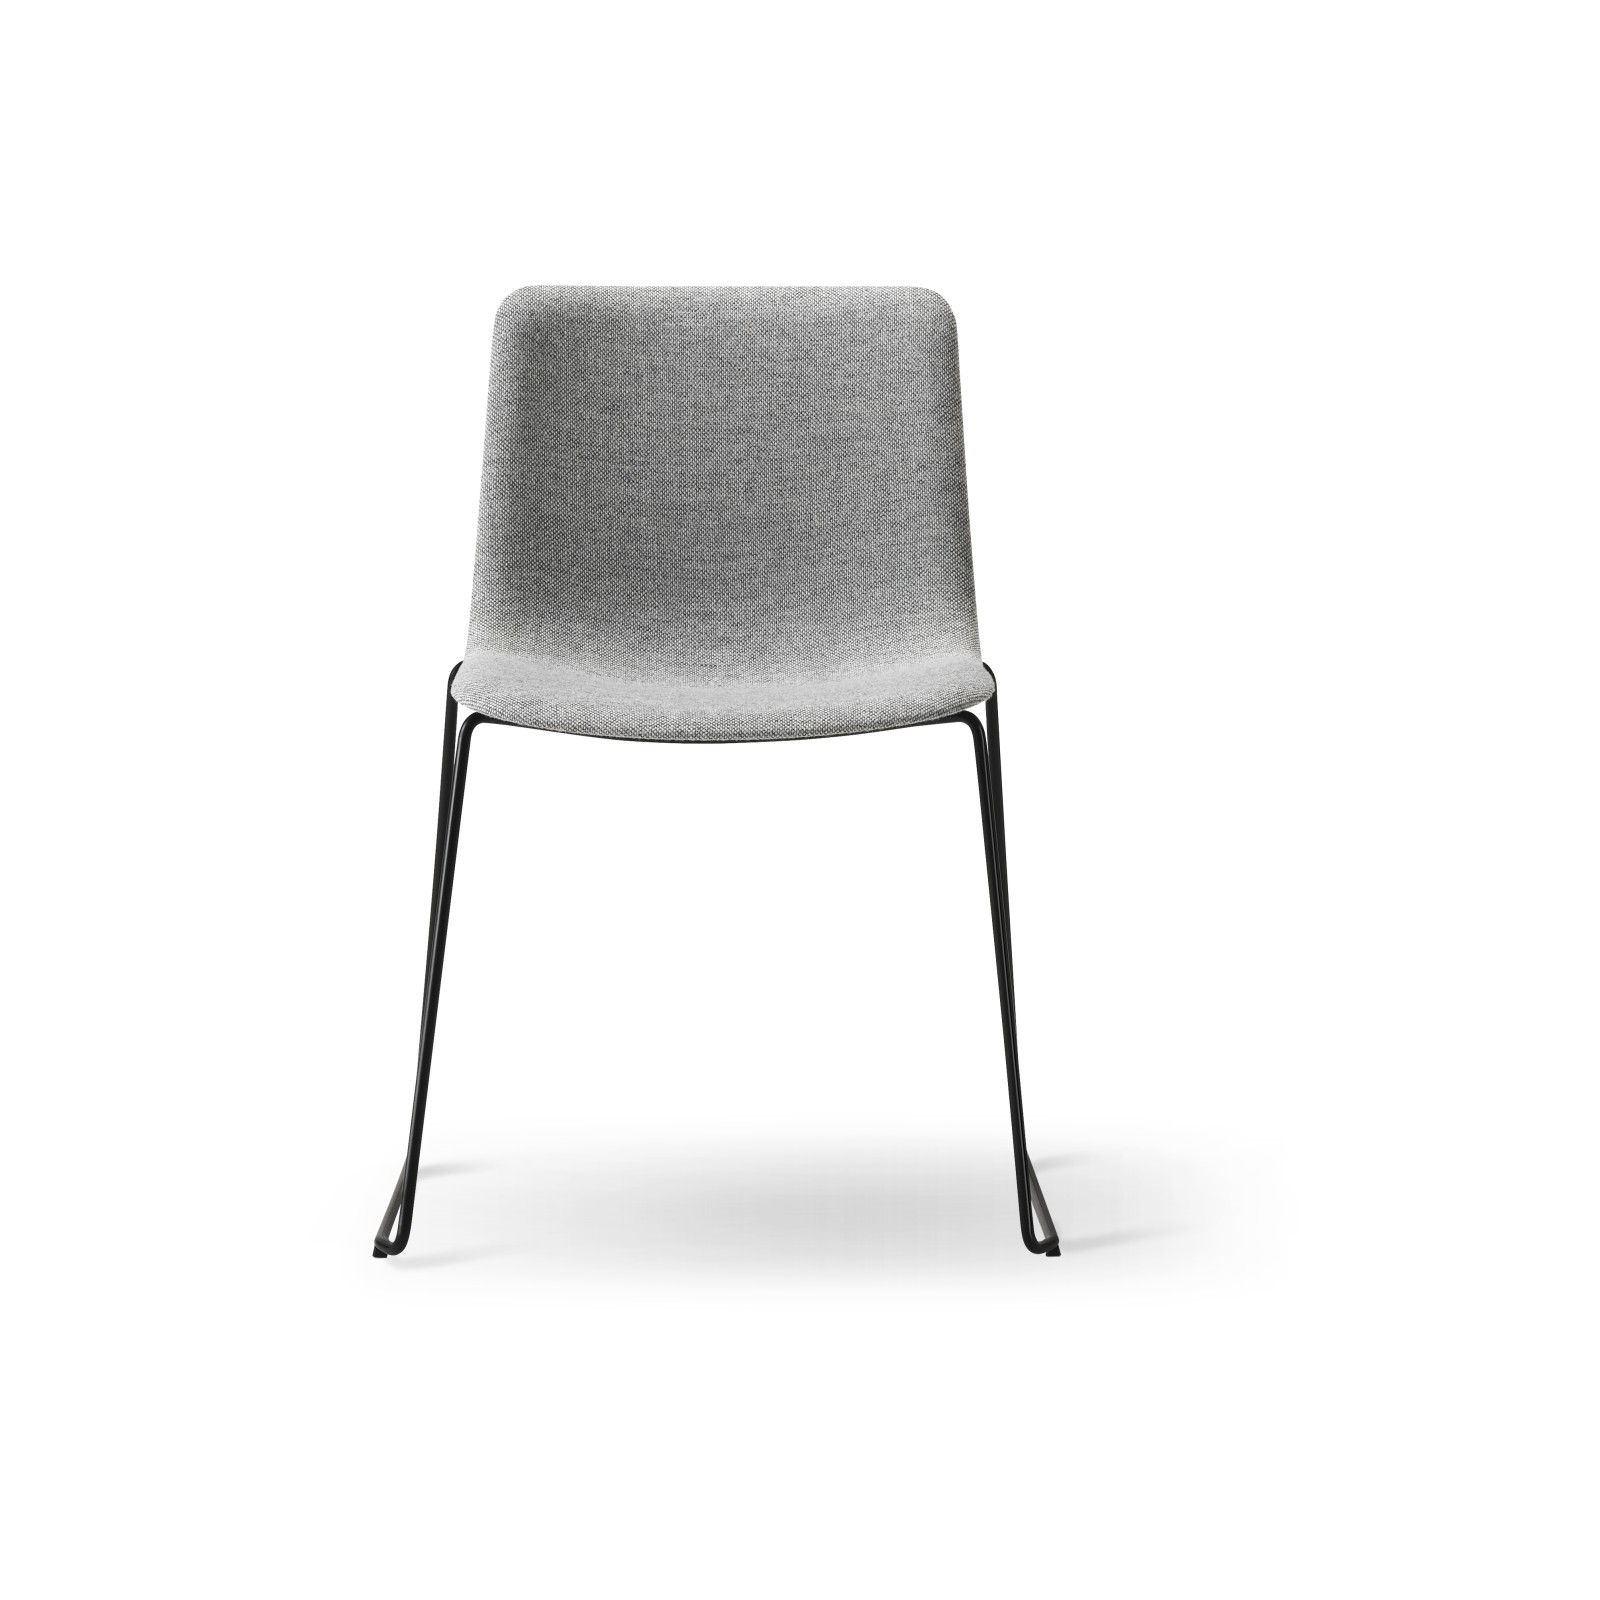 Pato Sledge Chair Fully Upholstered Chrome Steel, Remix 2 143